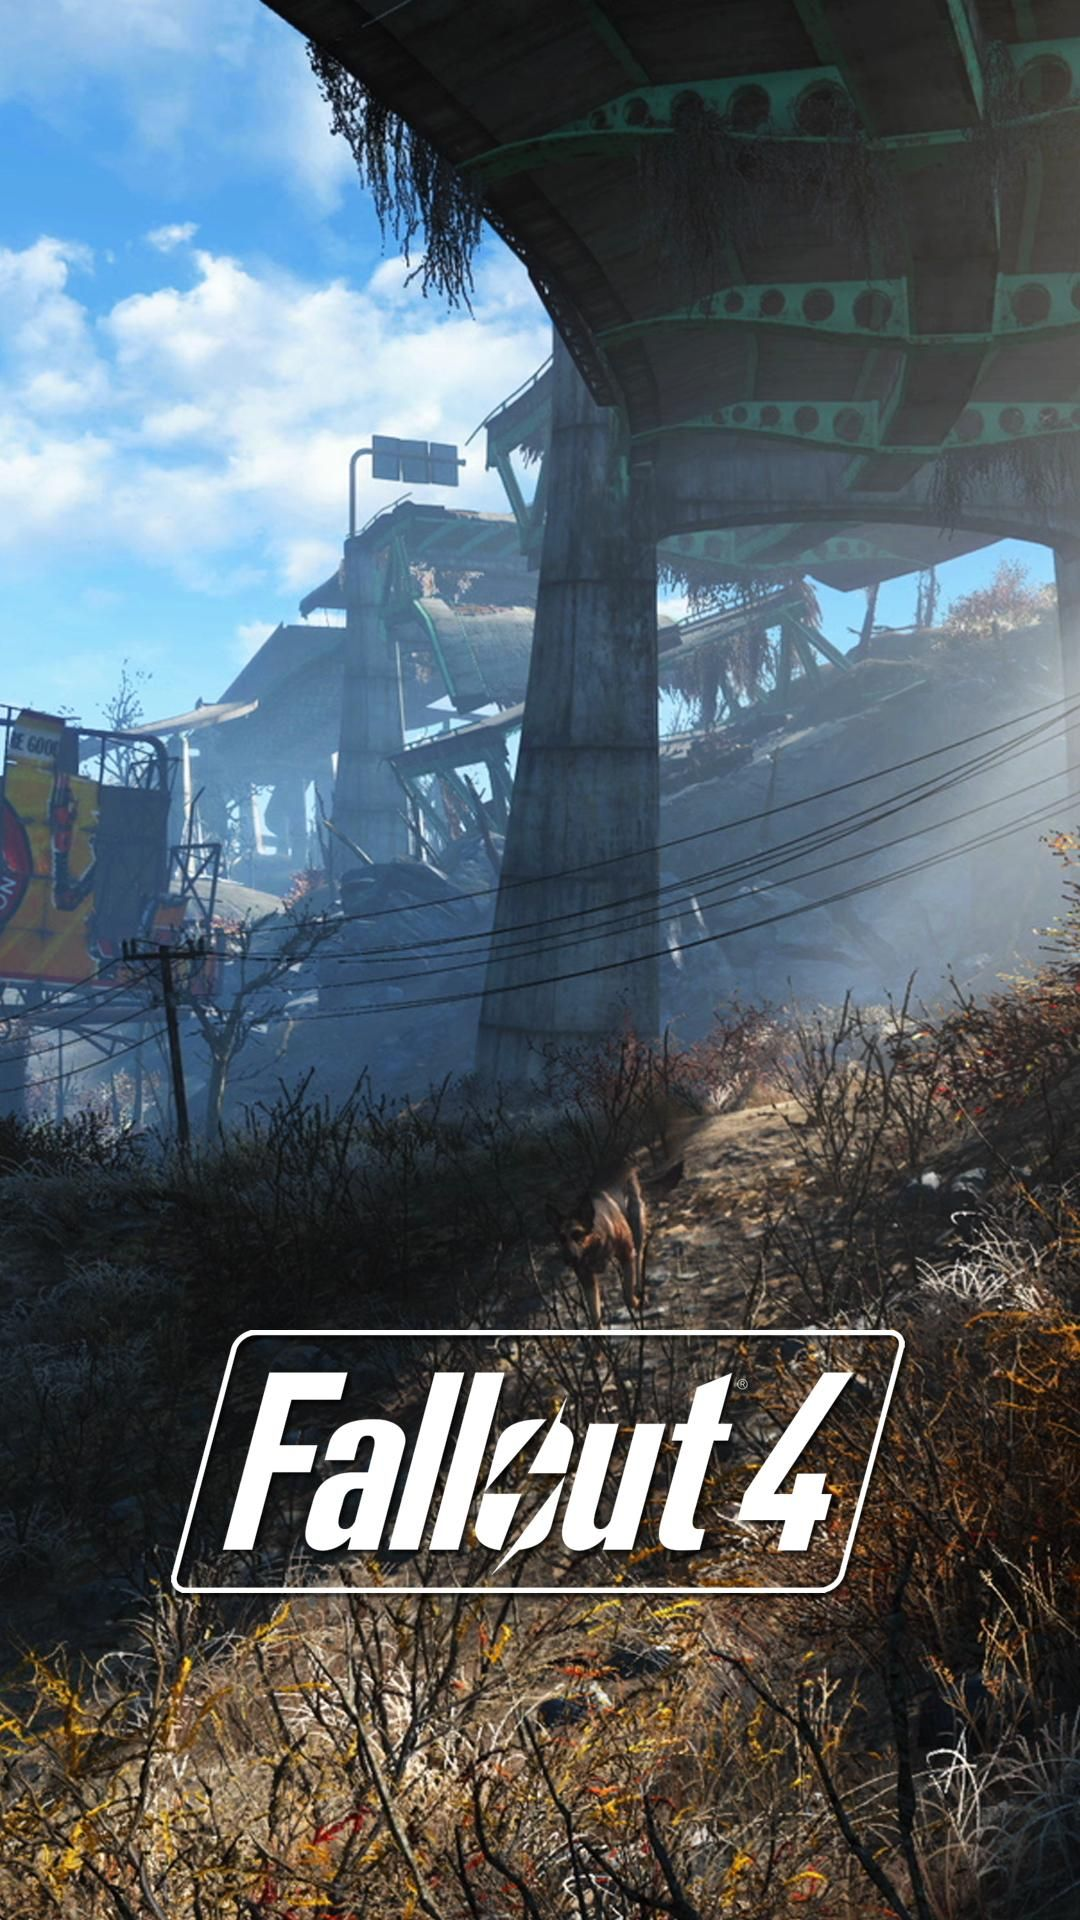 I Made Some Fallout 4 Lock Screen Wallpapers From E3 Stills Imgur